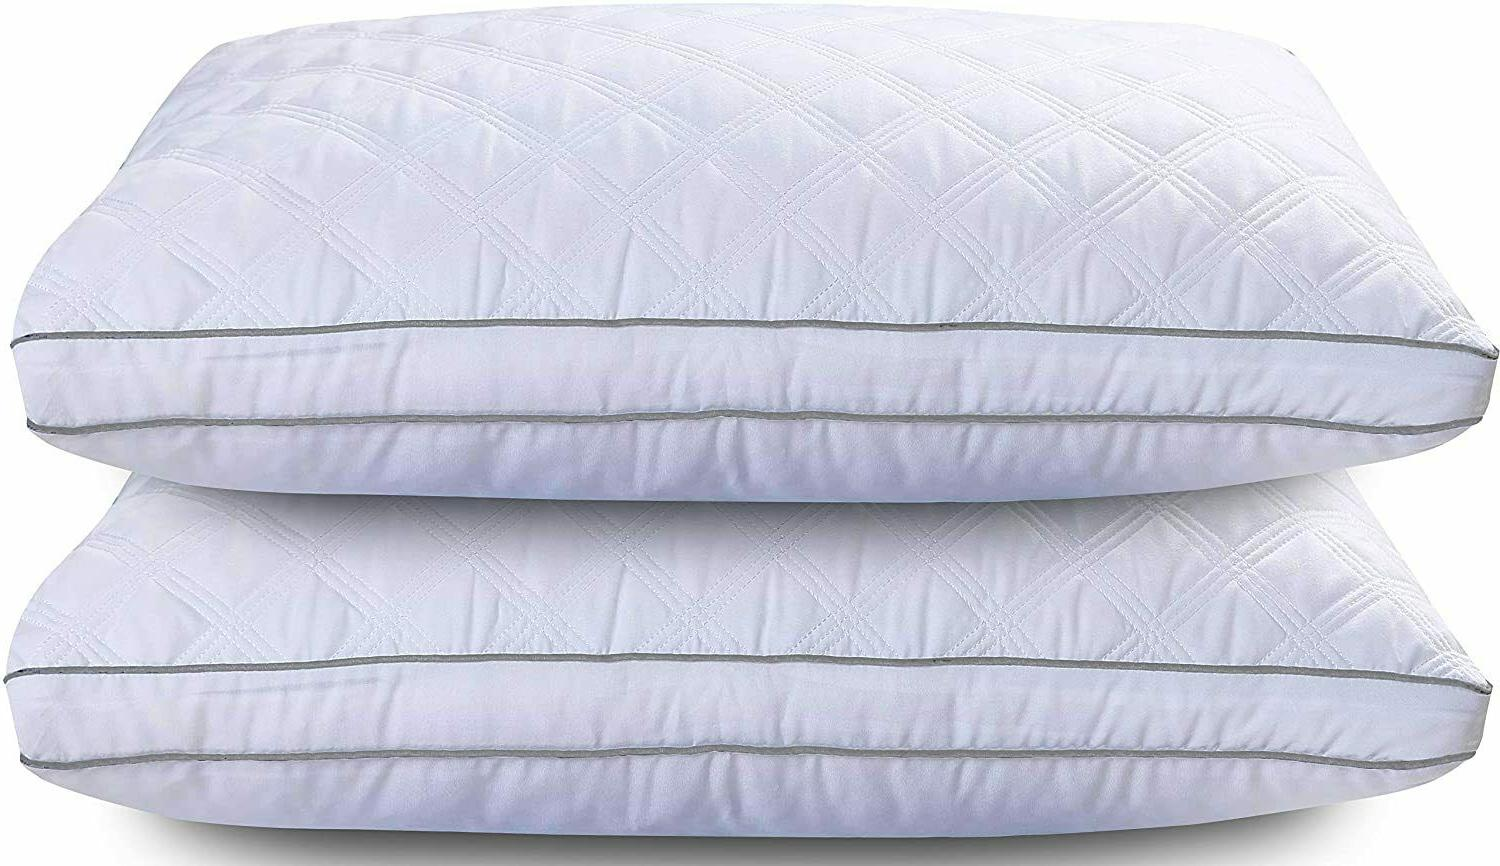 2 Pack Pillows Ultra Bed Pillows for Back Sleepers